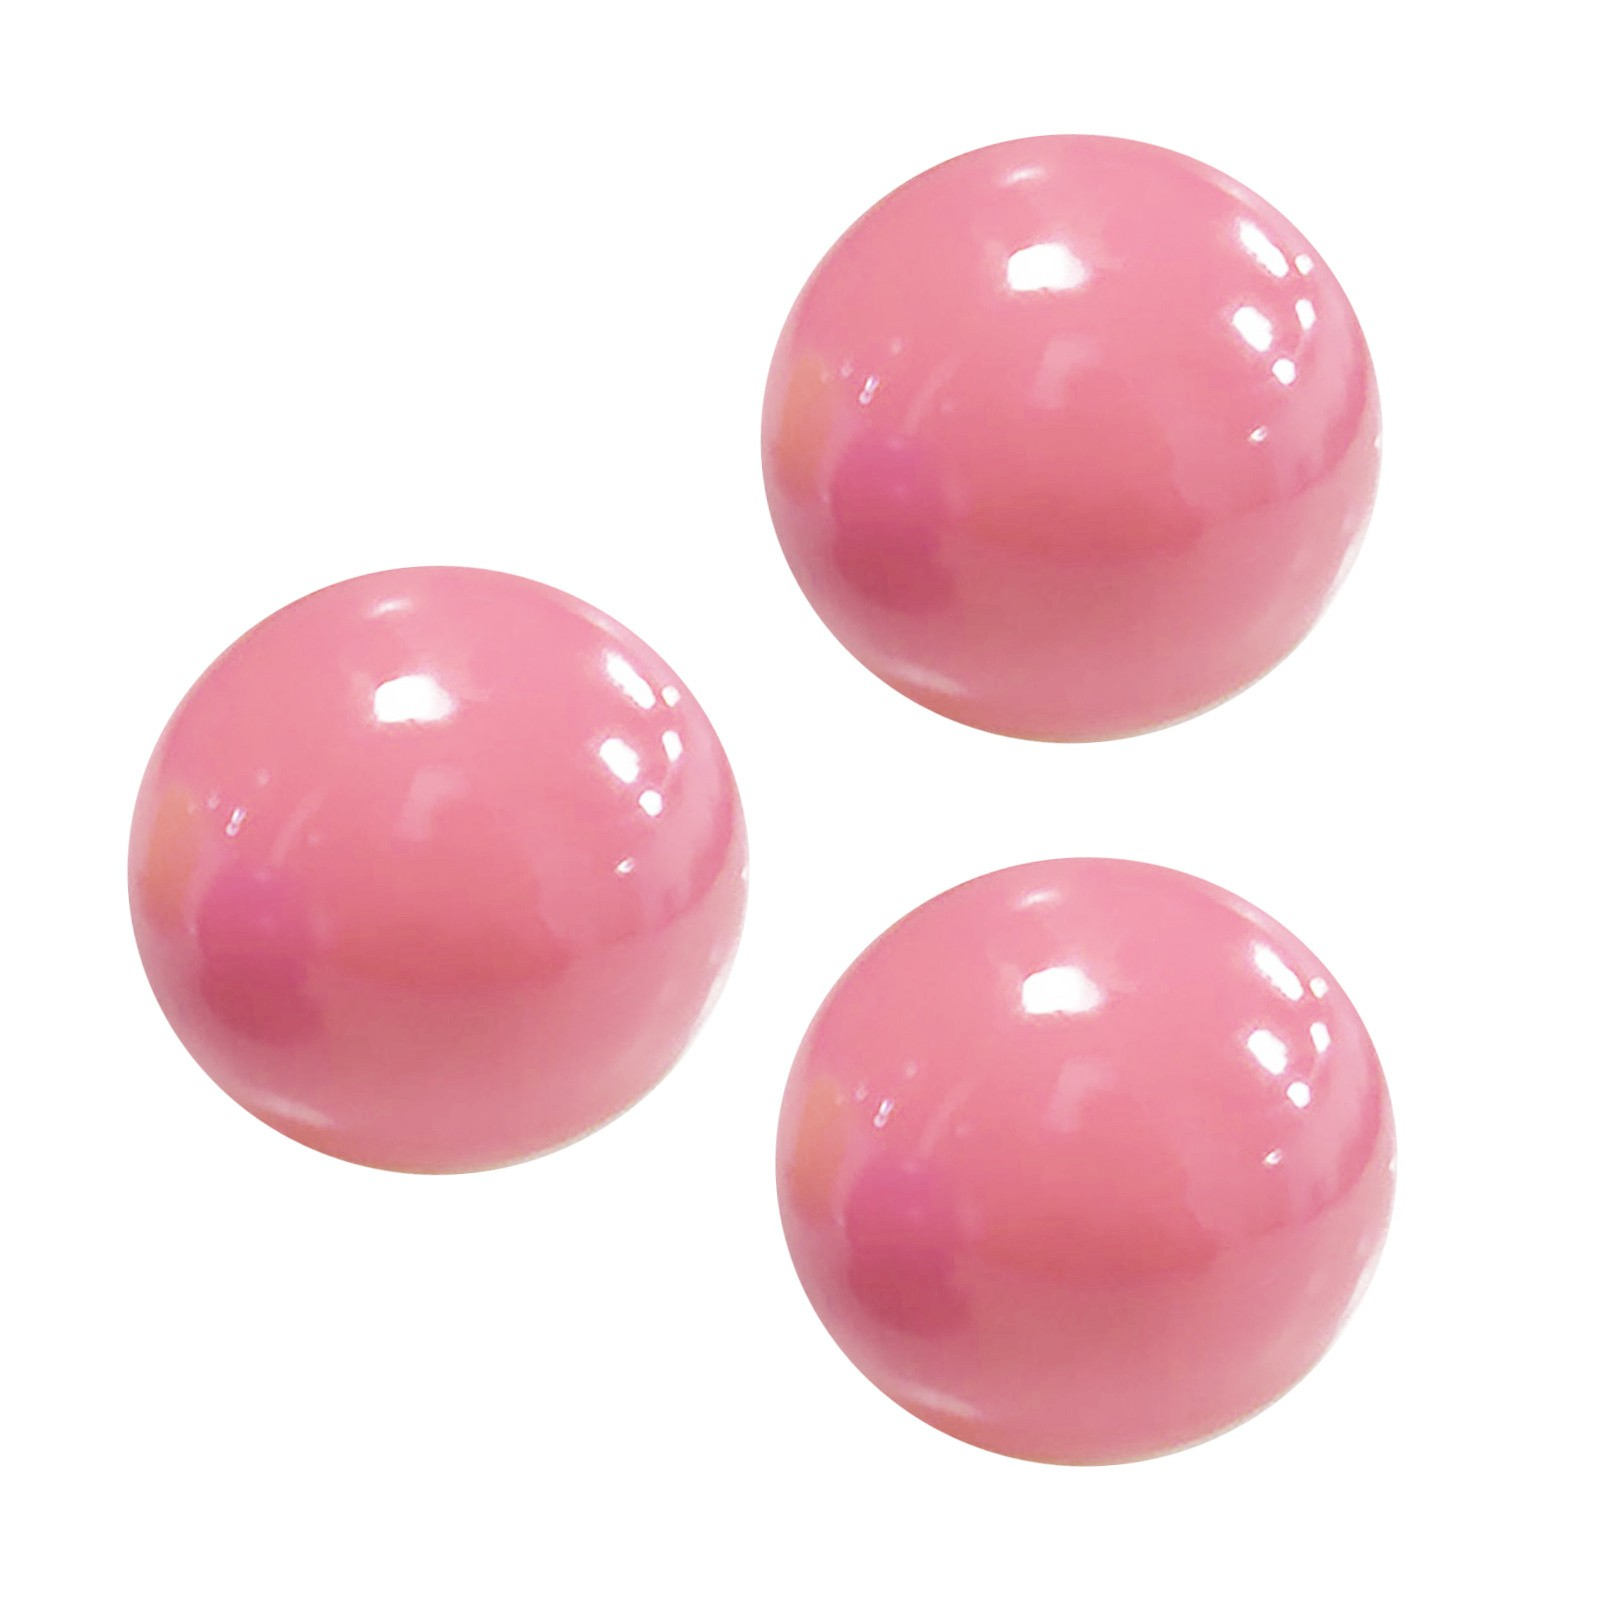 Sticky Wall Balls Luminous Stress Relief Balls Sticky Game Stress Relief Toys Decompression Toy (squeeze Toys Kids Tool Fun img5